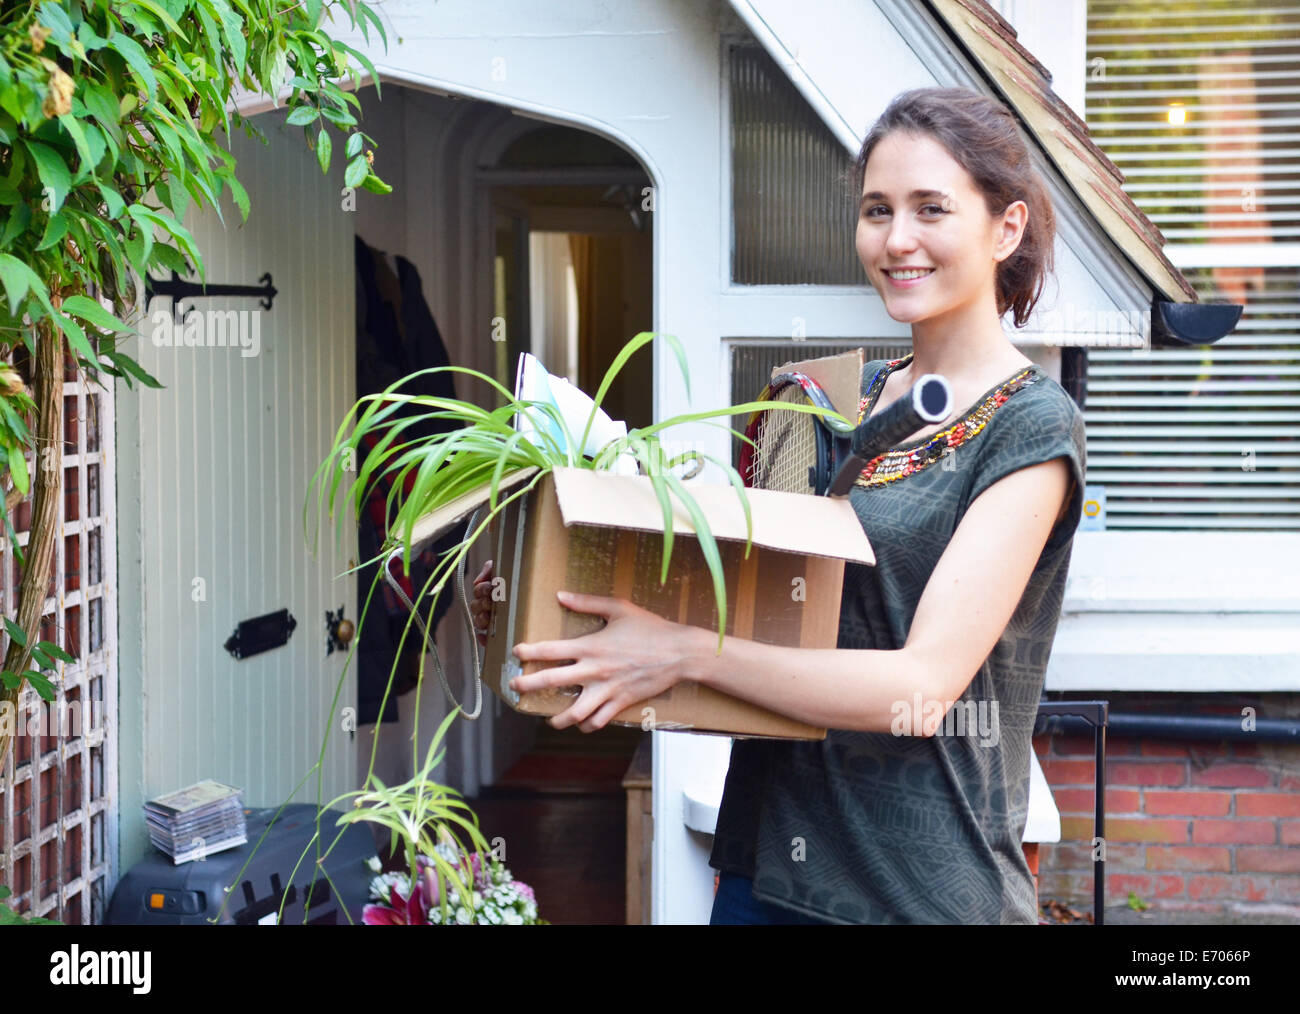 Young woman outside new house carrying cardboard box - Stock Image